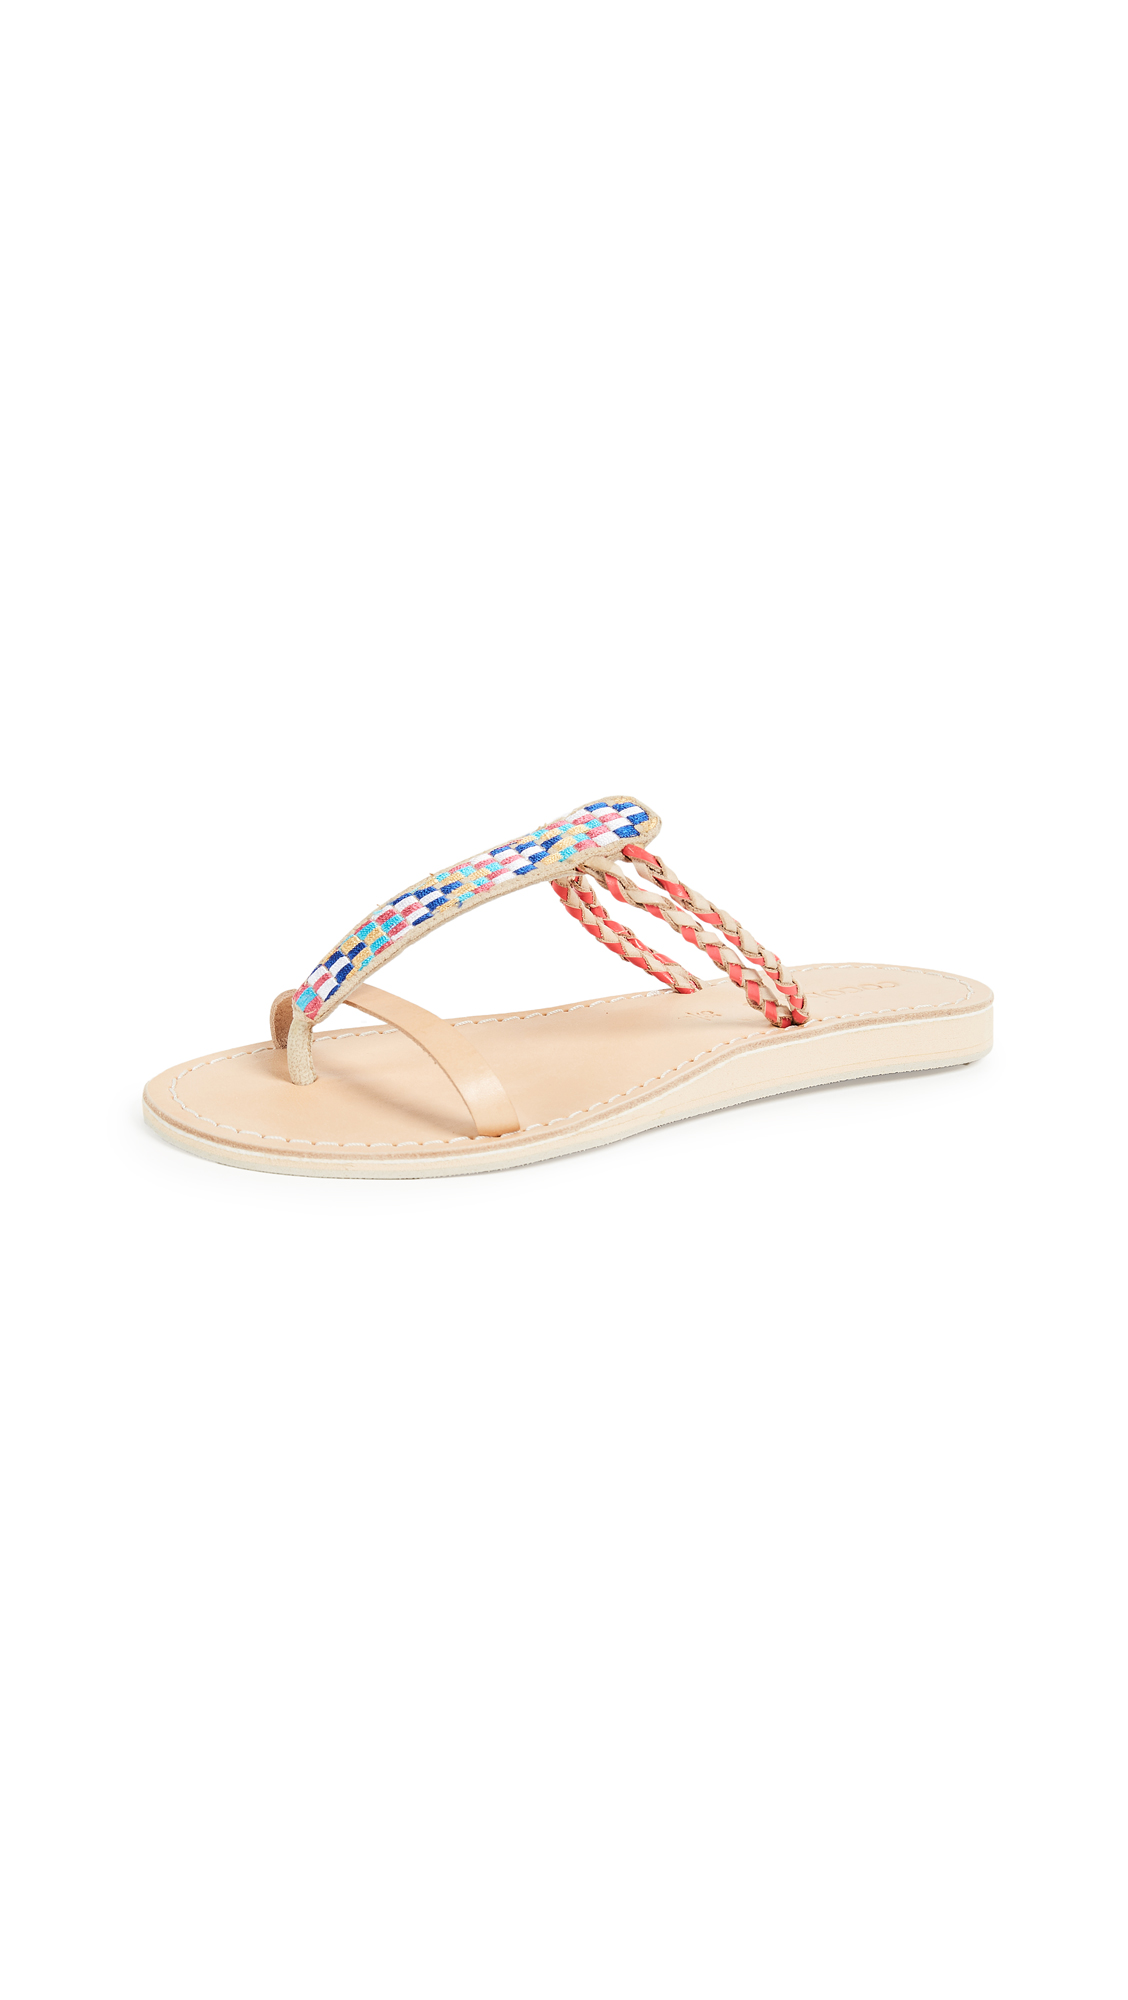 Cocobelle Cali Geometric Sandals - Arrow